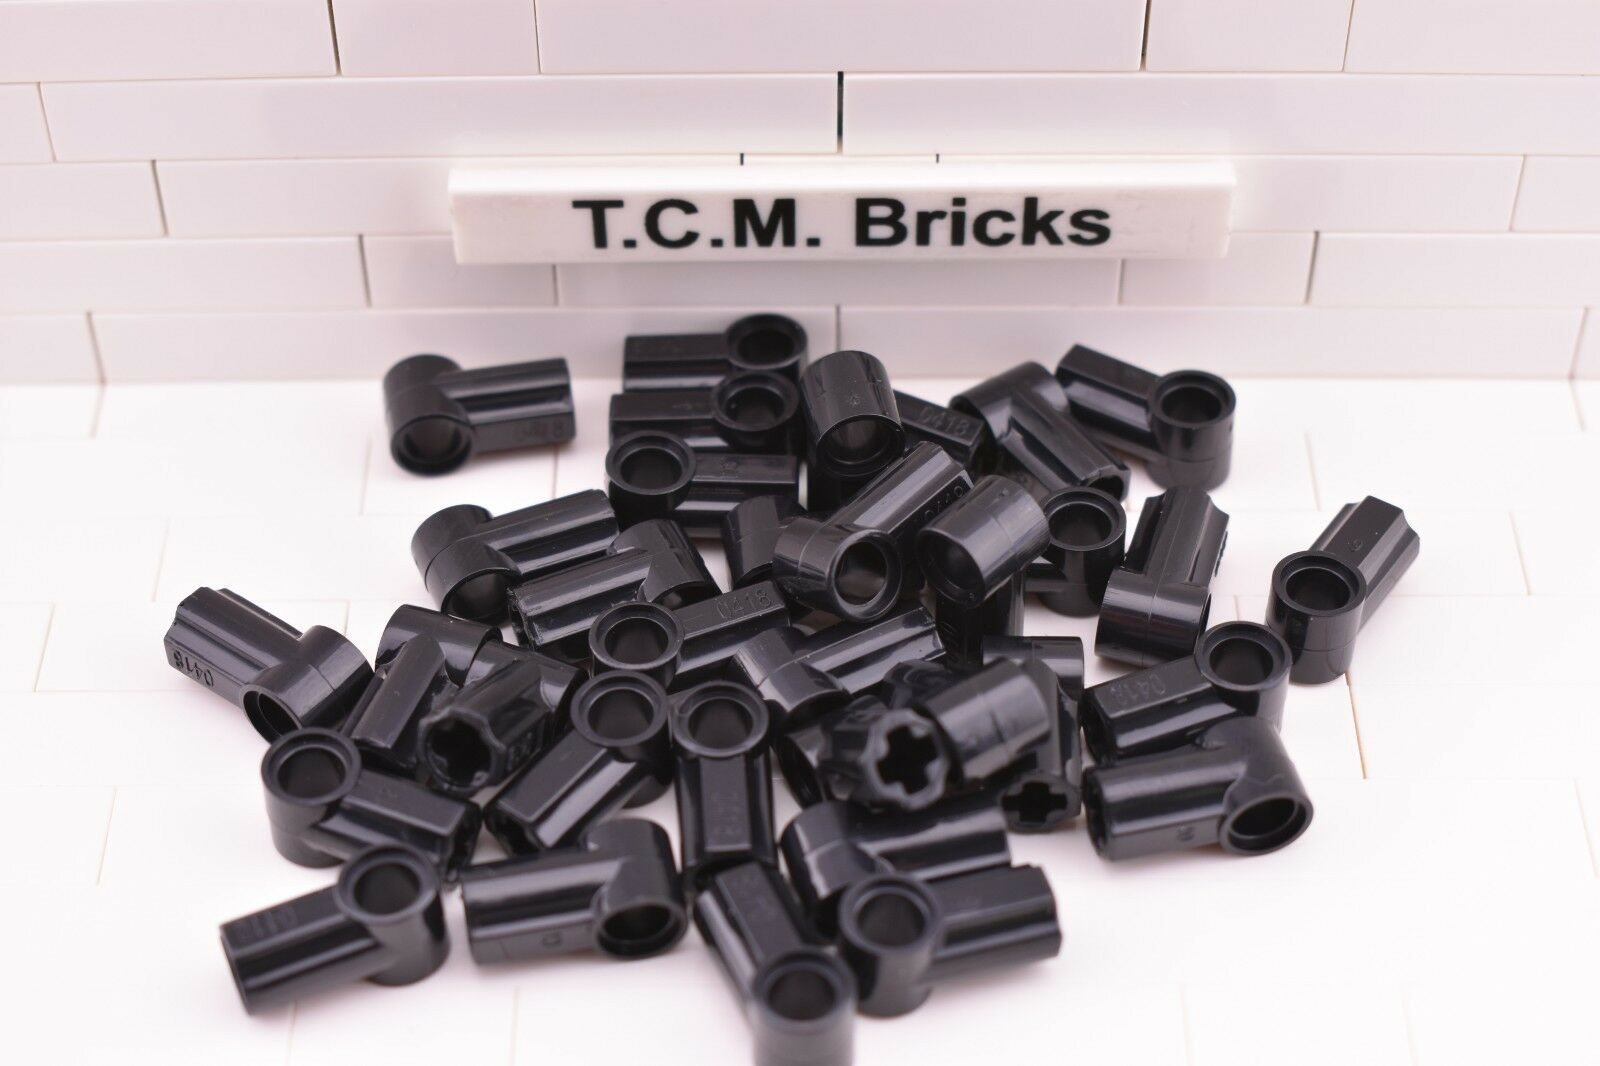 QTY:100 Pieces TCM Compatible Bricks Black Axle /& Pin Connection Angled #1